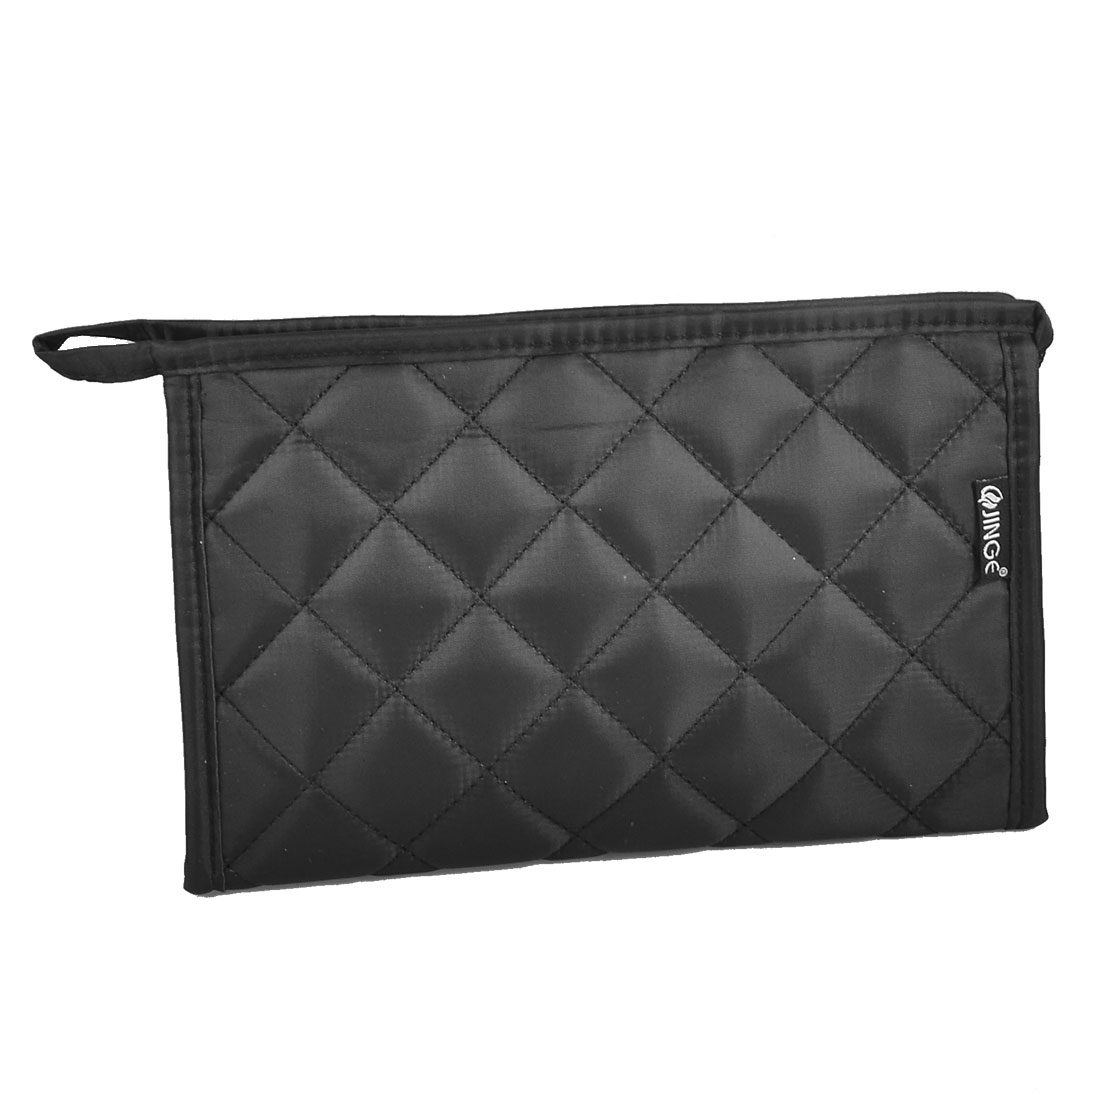 Travel Black Zipper Toiletry Case Makeup Cosmetic Bag Organizer w Mirror